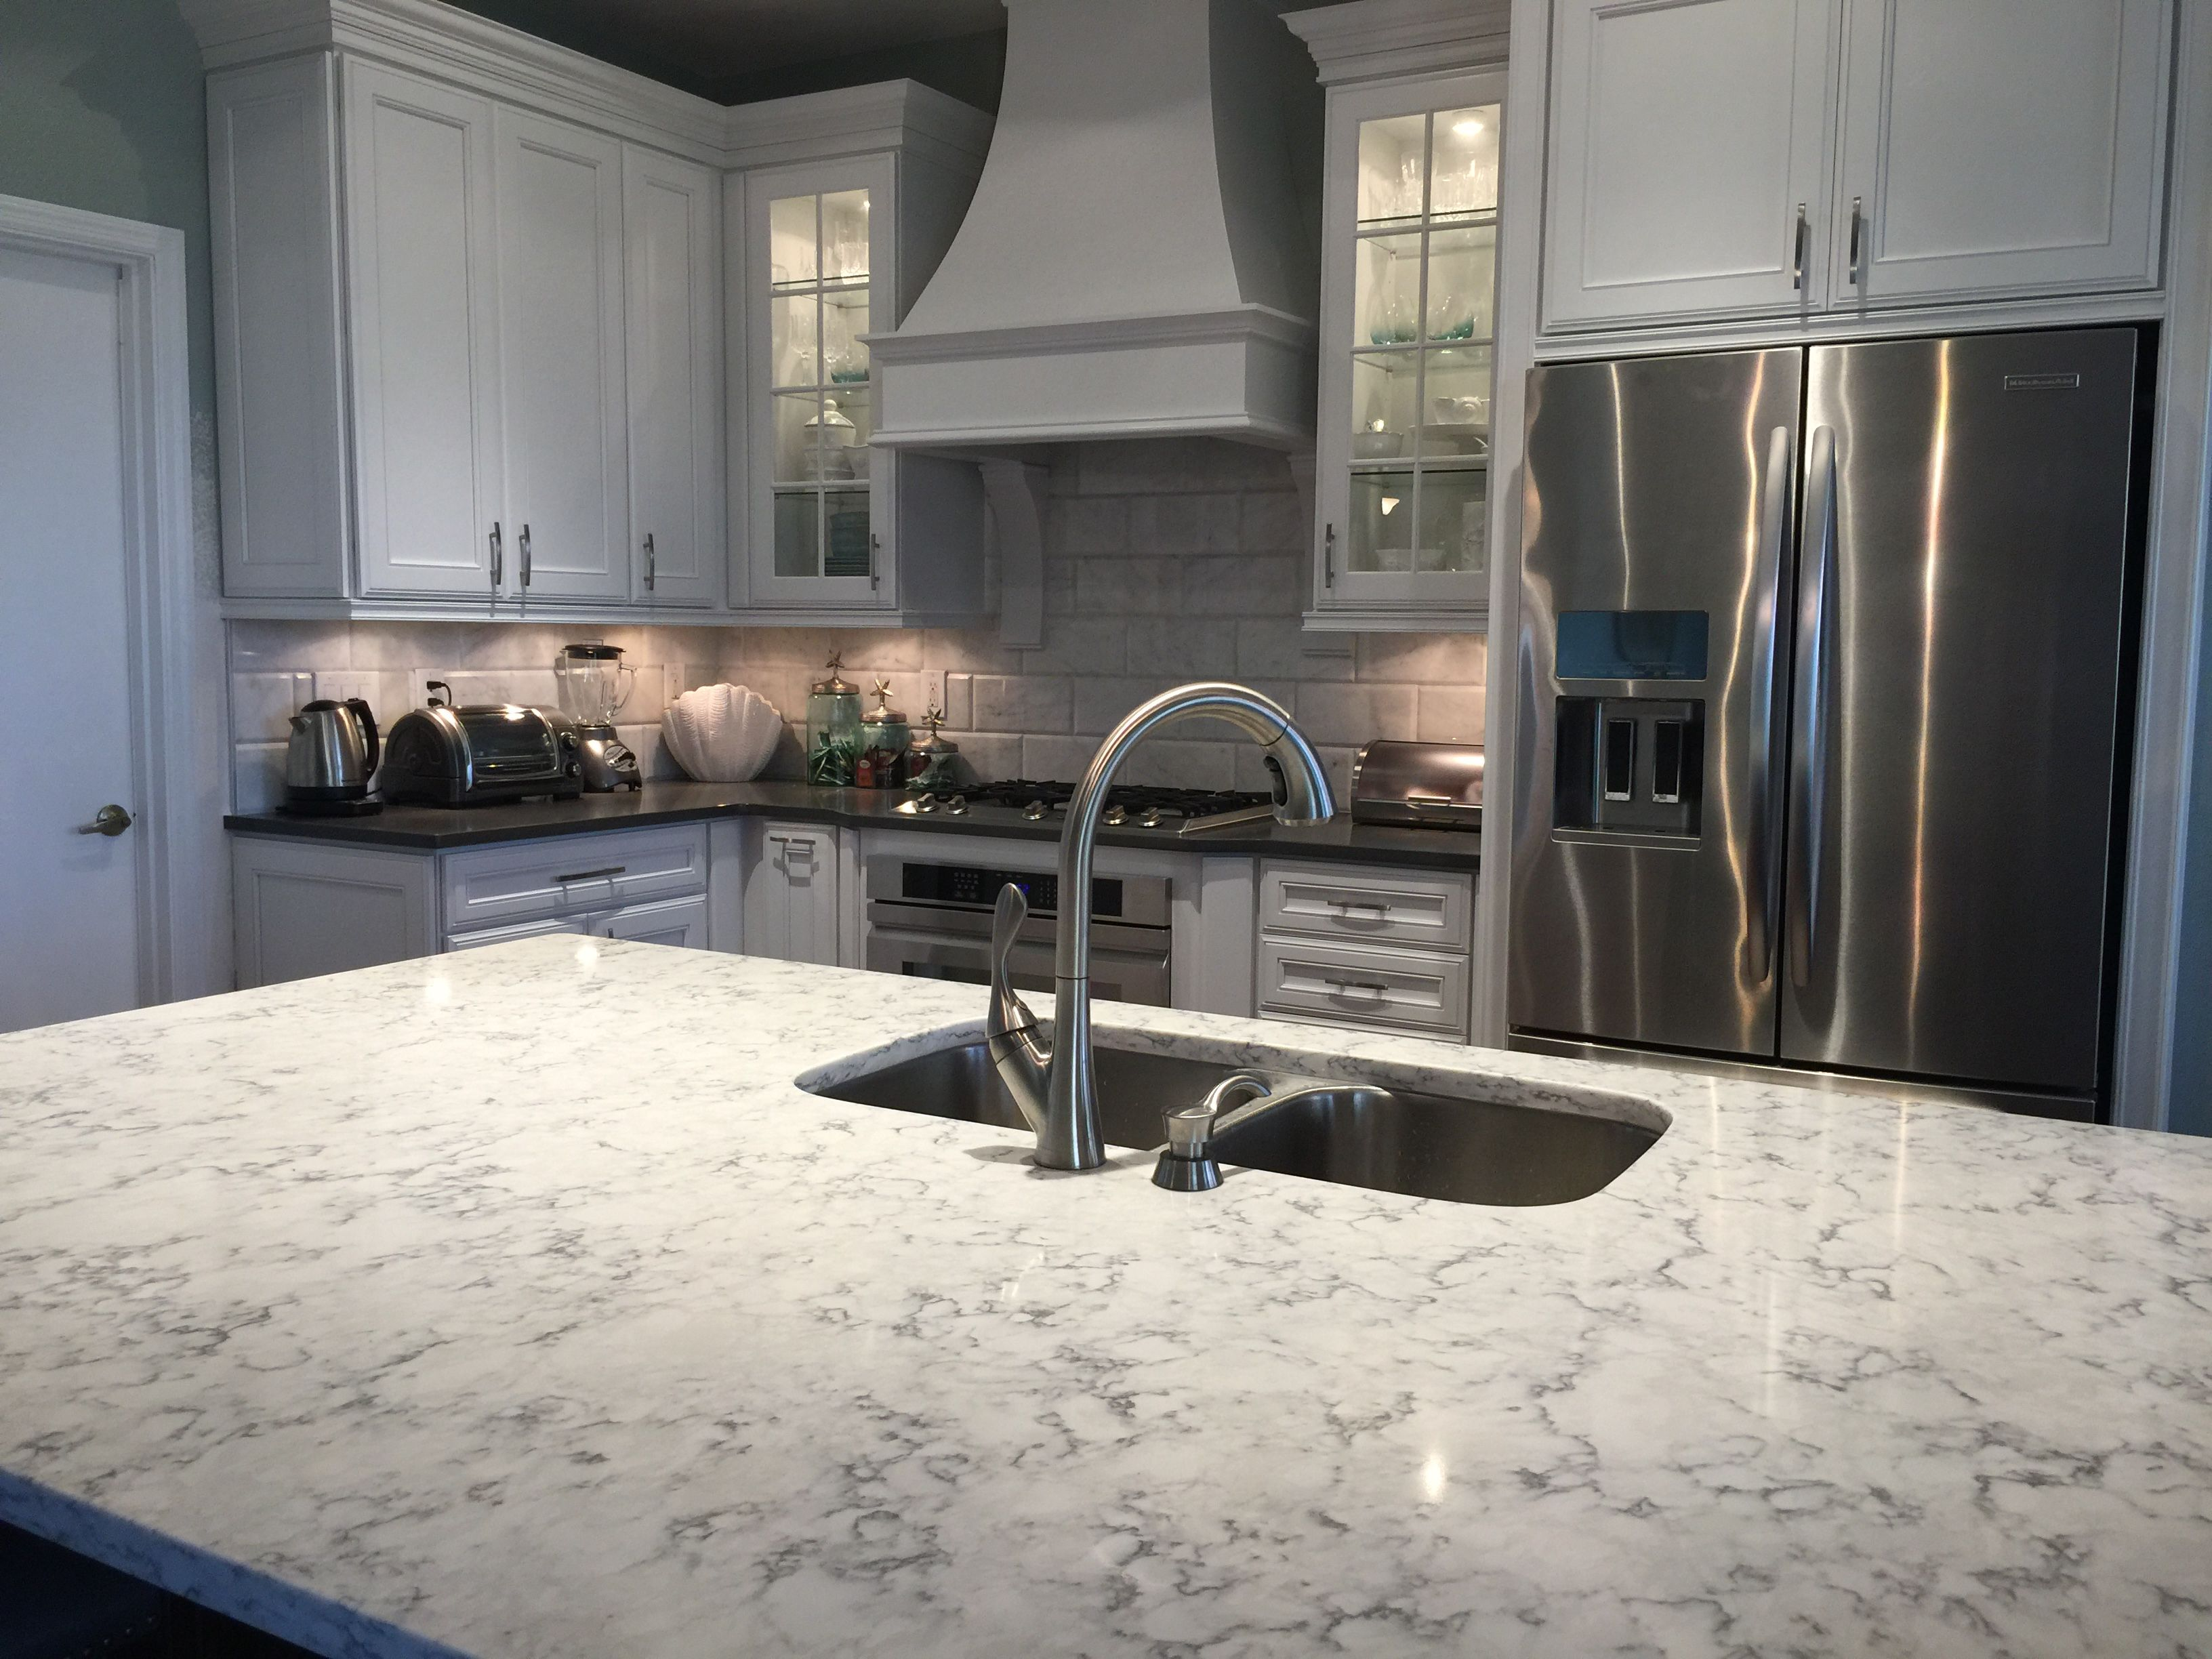 Quartz Countertop Viateralg Hausys In Rococo Dawn's Mesmerizing Kitchen Counter Top Design Decoration